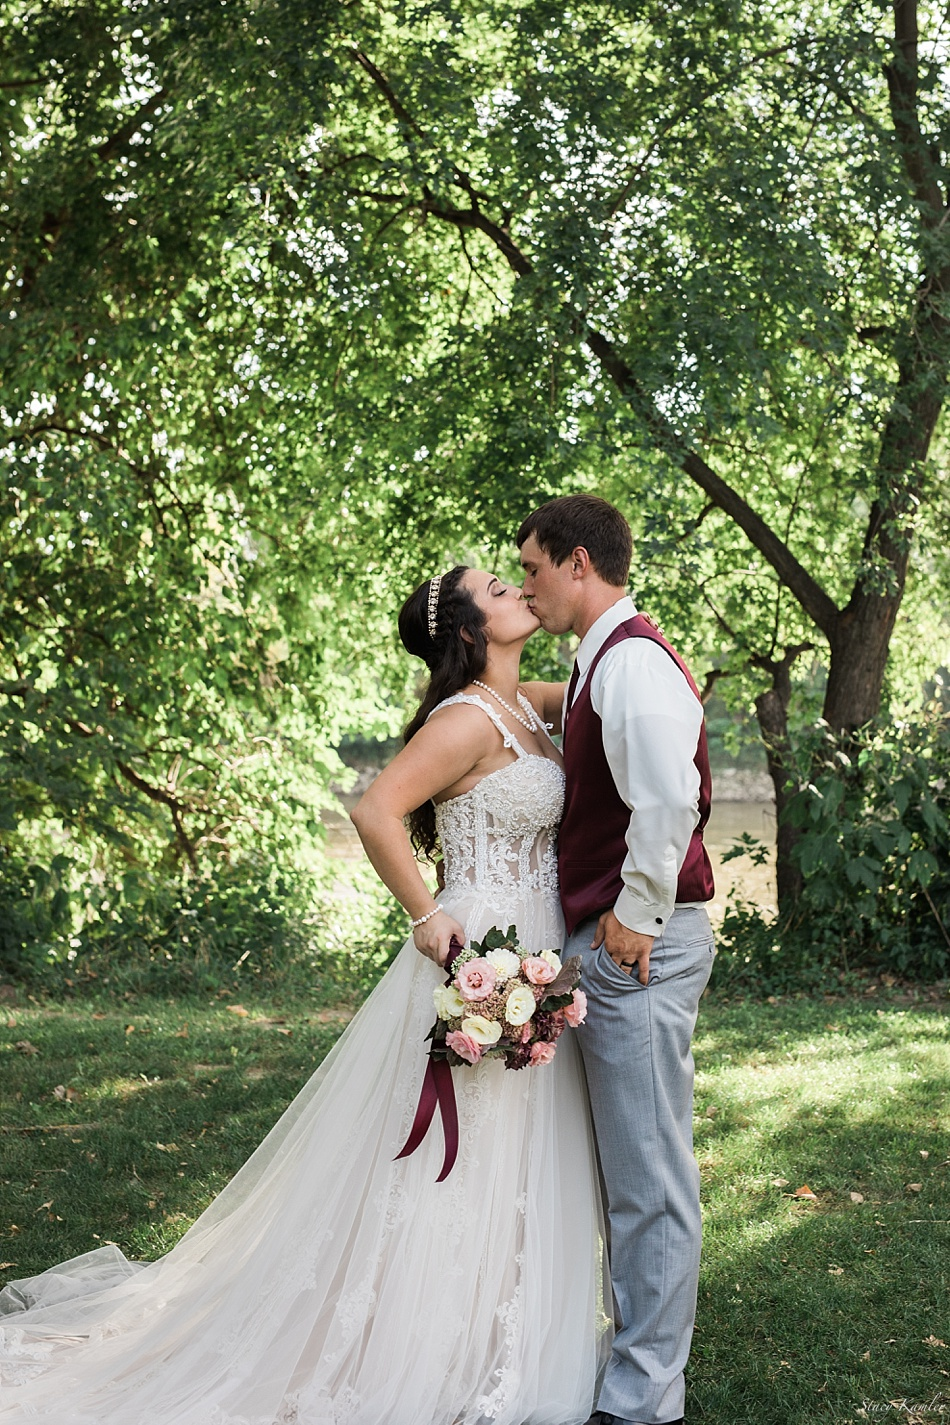 Bride and Groom Portraits at Riverwest Park, Elkhorn, NE